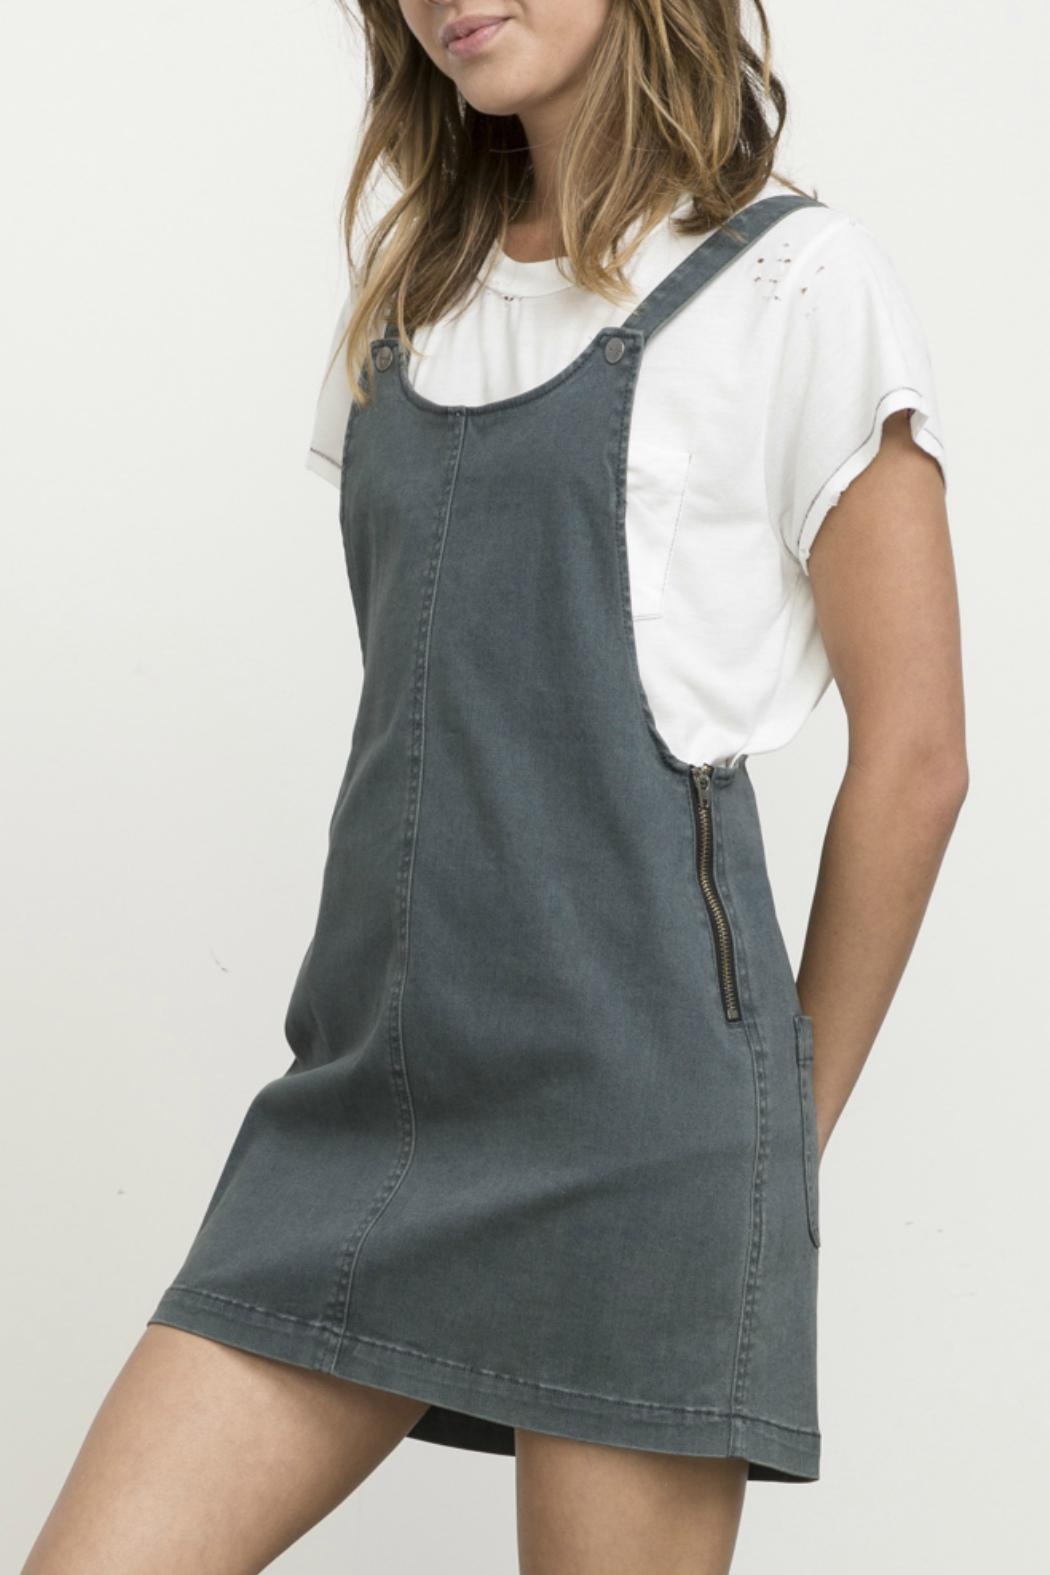 87d2bdfdc224 RVCA Oxley Overall Dress from Providence by Queen of Hearts and ...